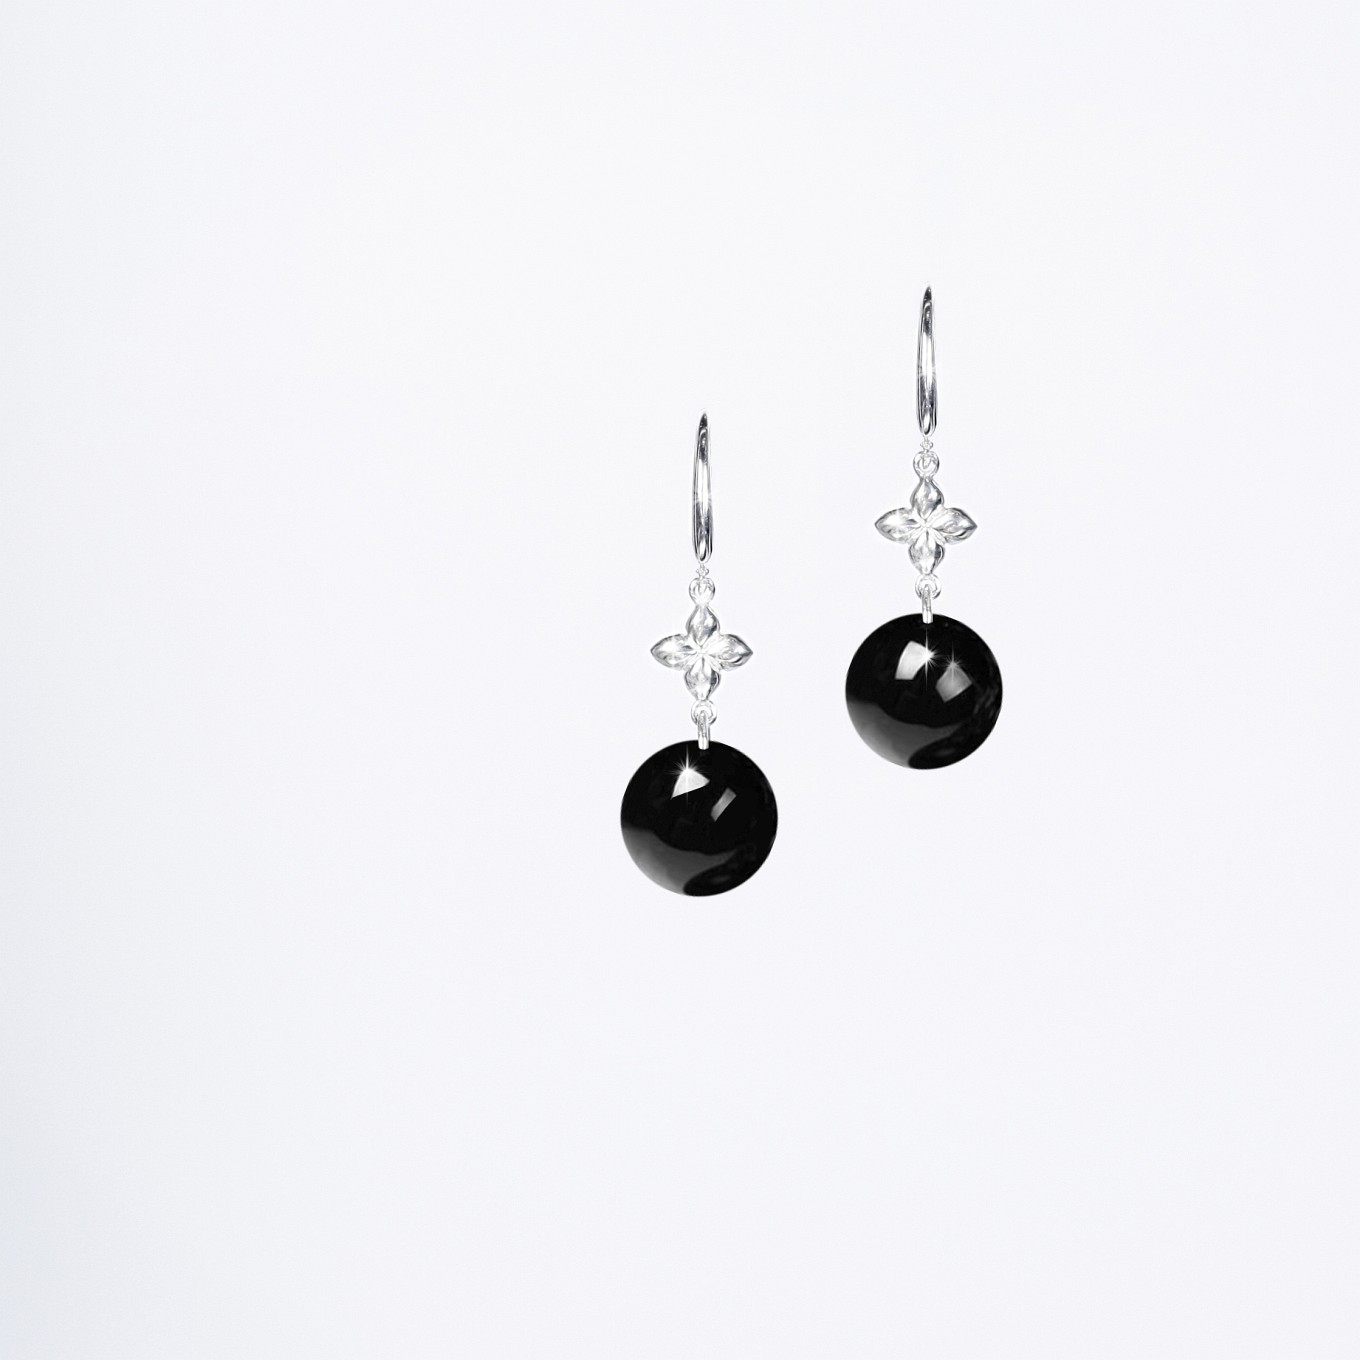 HARDSTONE SEVILLA EARRINGS IN STERLING SILVER